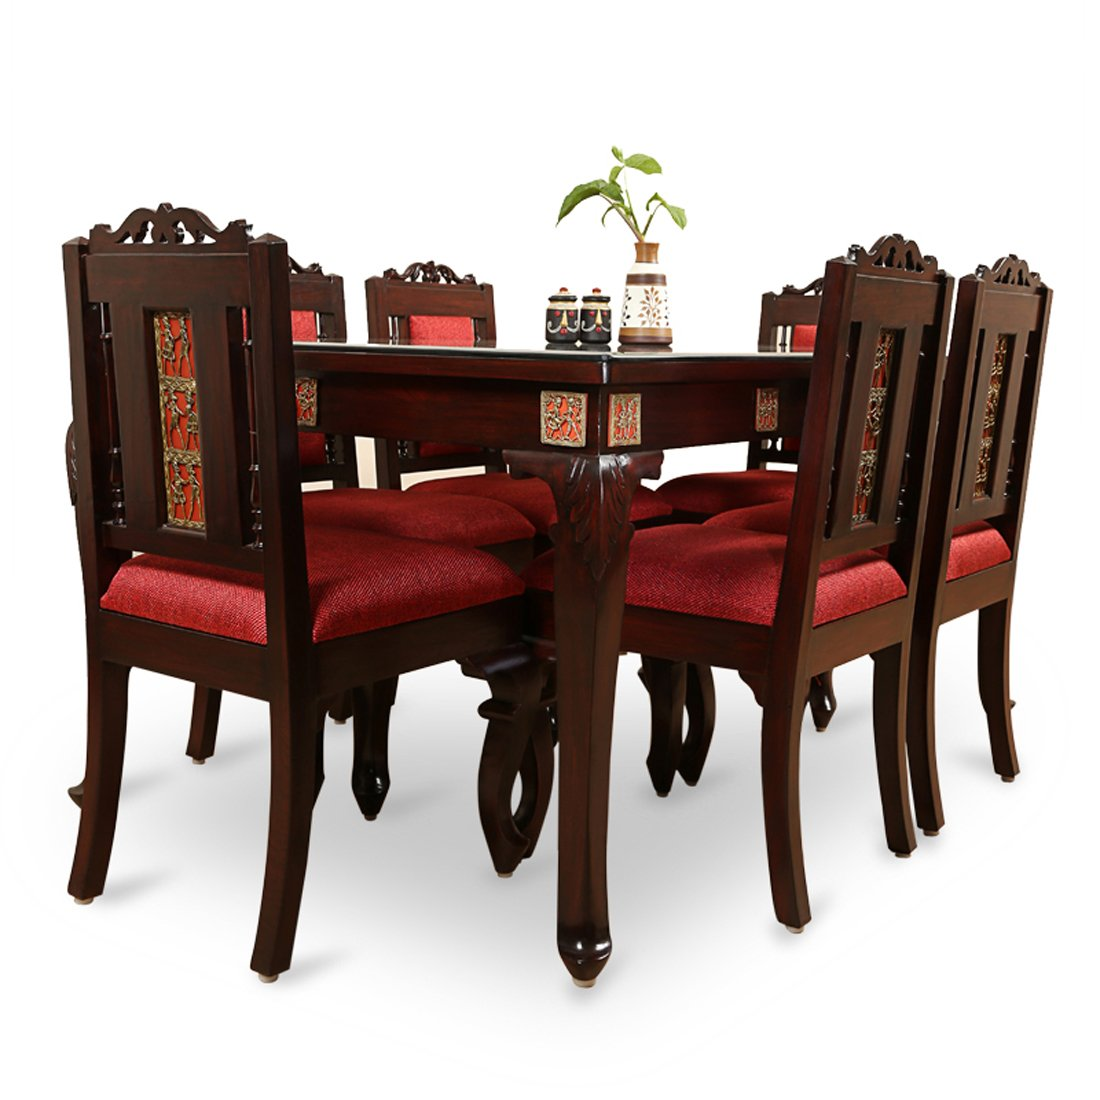 05d36d428 ExclusiveLane Teak Wood Table and Chair with Warli and Dhokra Work 6 Seater  Dining Set  Amazon.in  Electronics